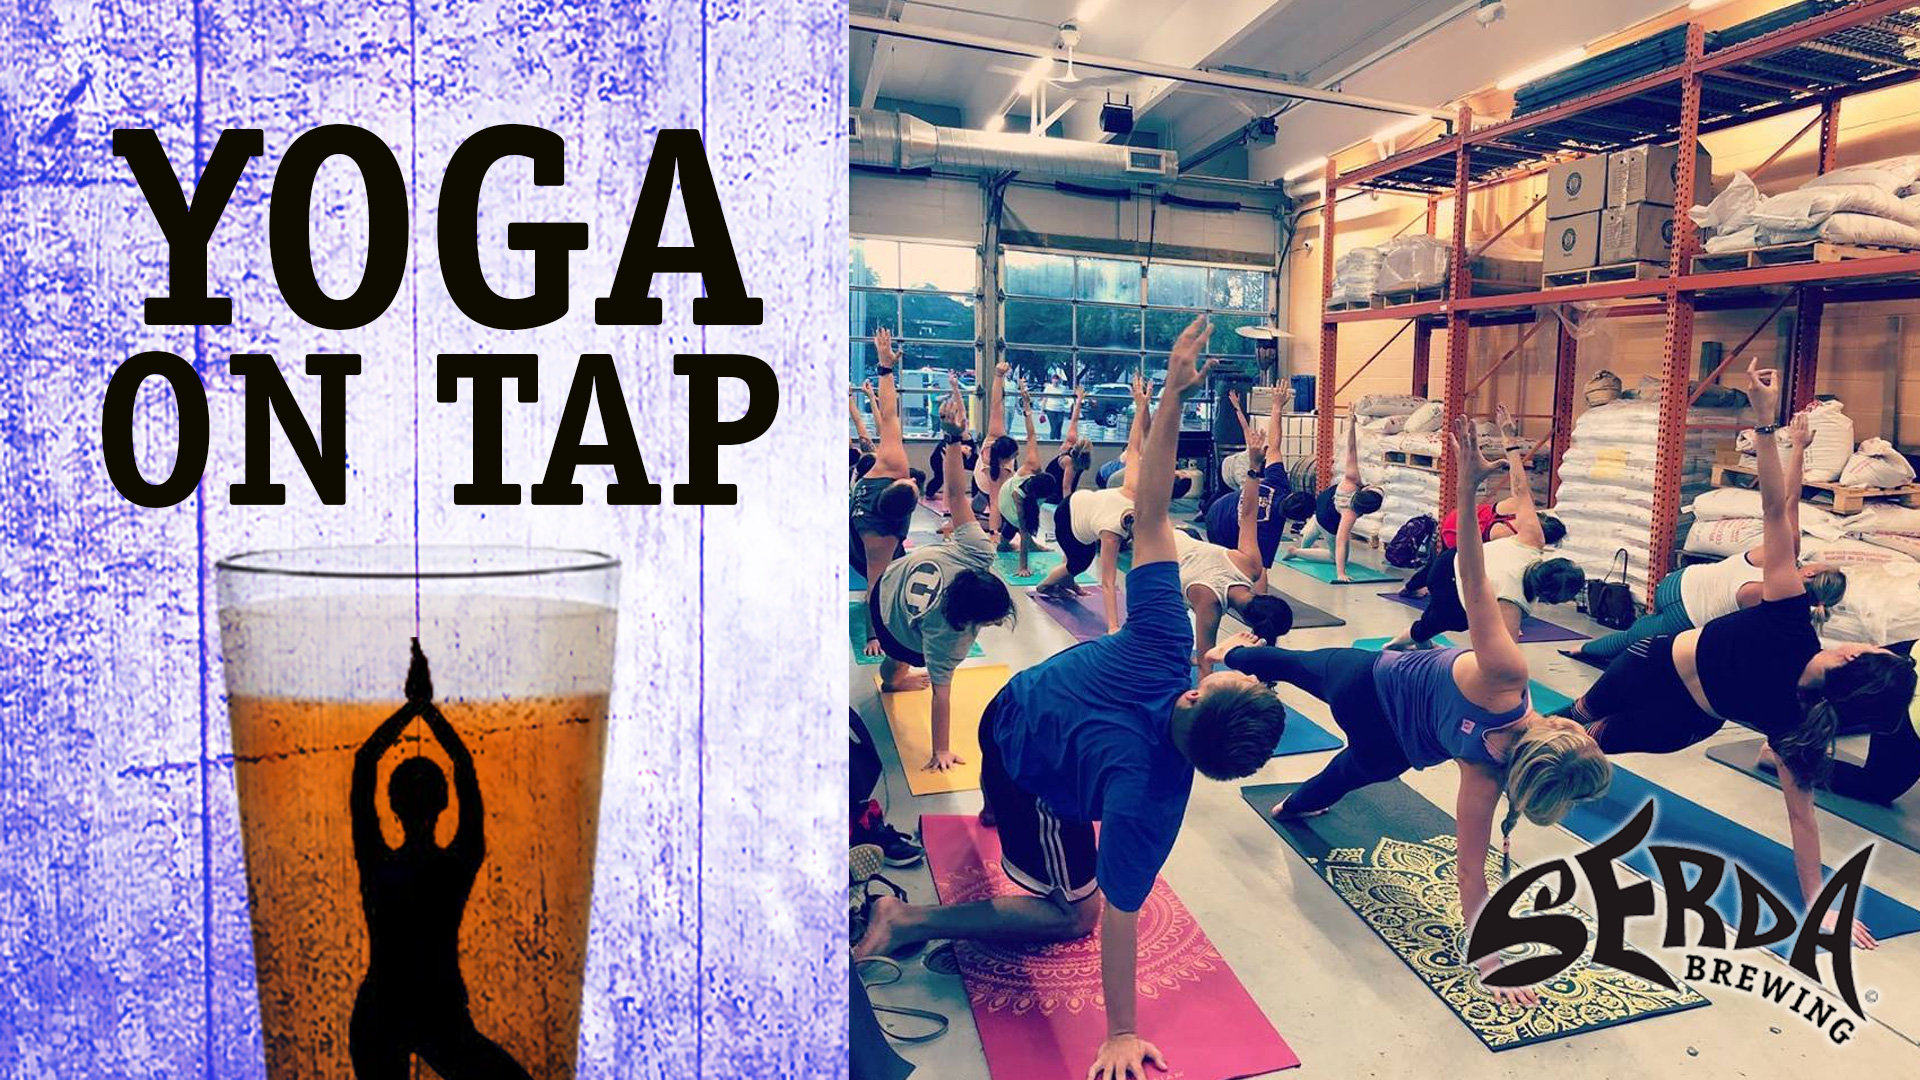 Serda Brewing Yoga on Tap